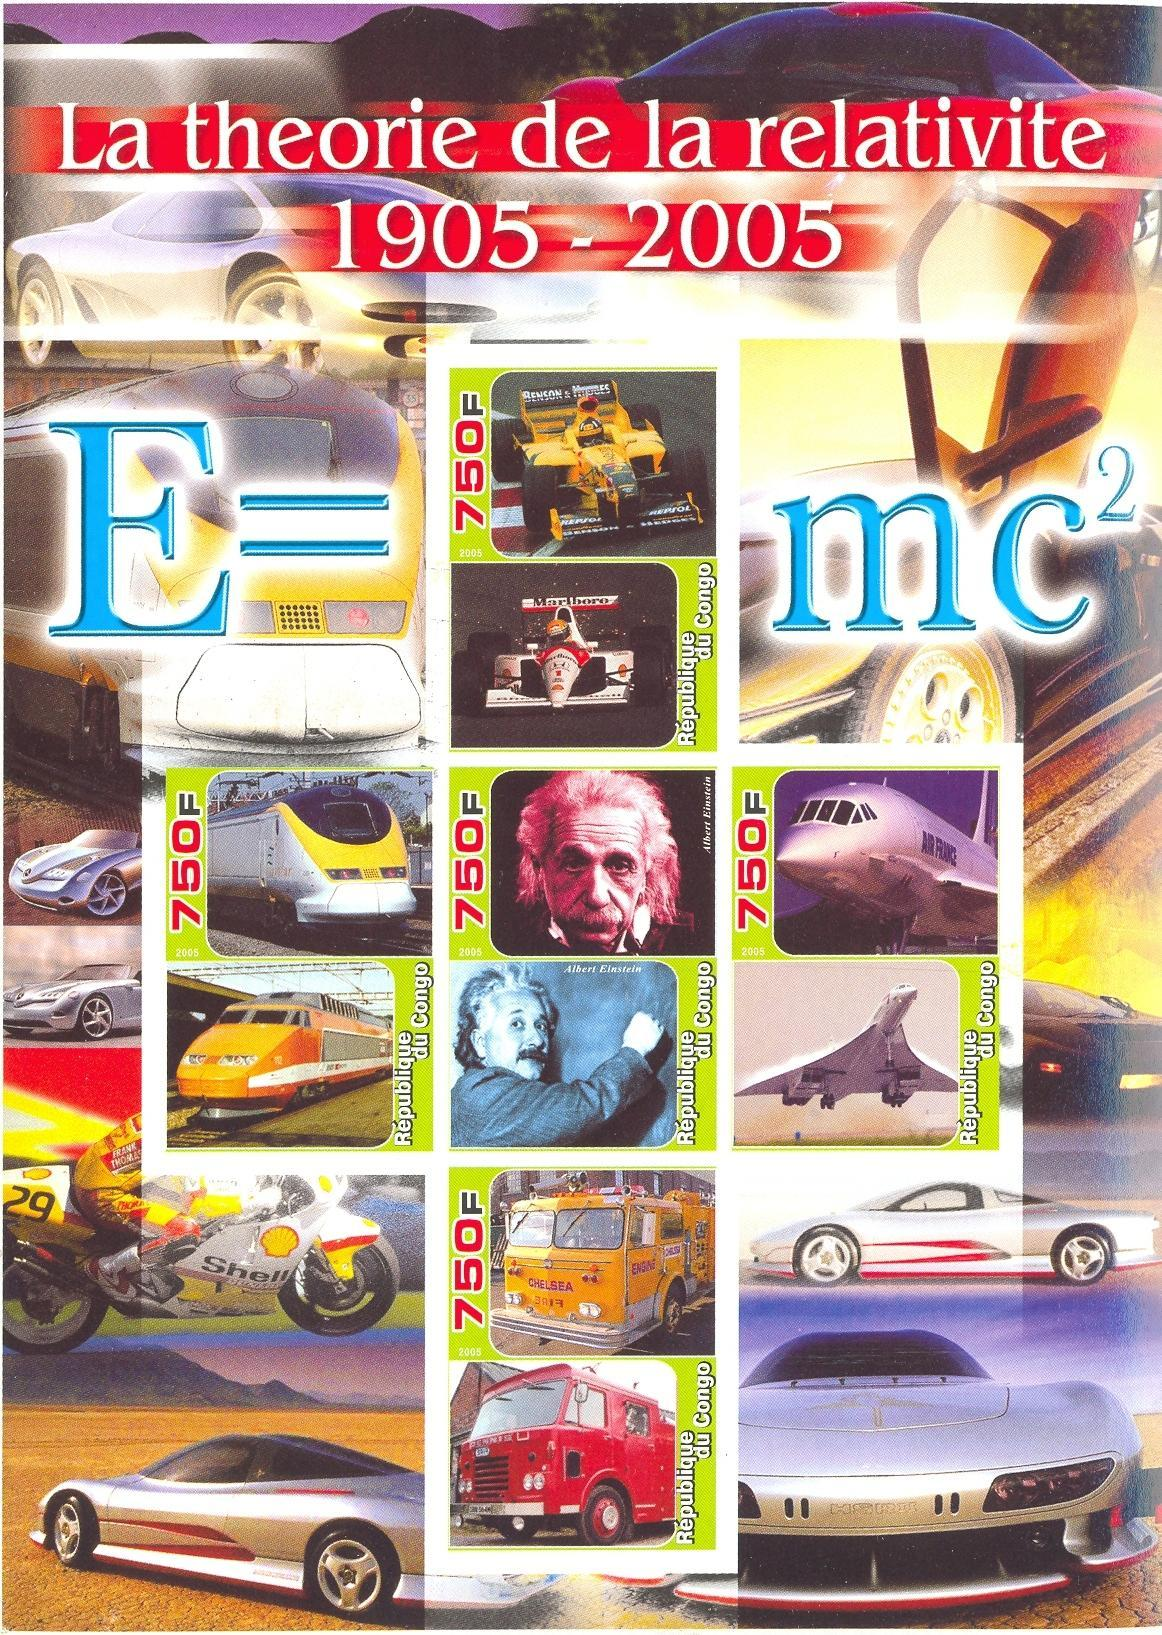 Stamps with Concorde, Train / Railway, Motorcycle, Formula 1, Einstein, Oil, Firefighters / engines, Racing Cars from Congo (non official) (image for product #036951)